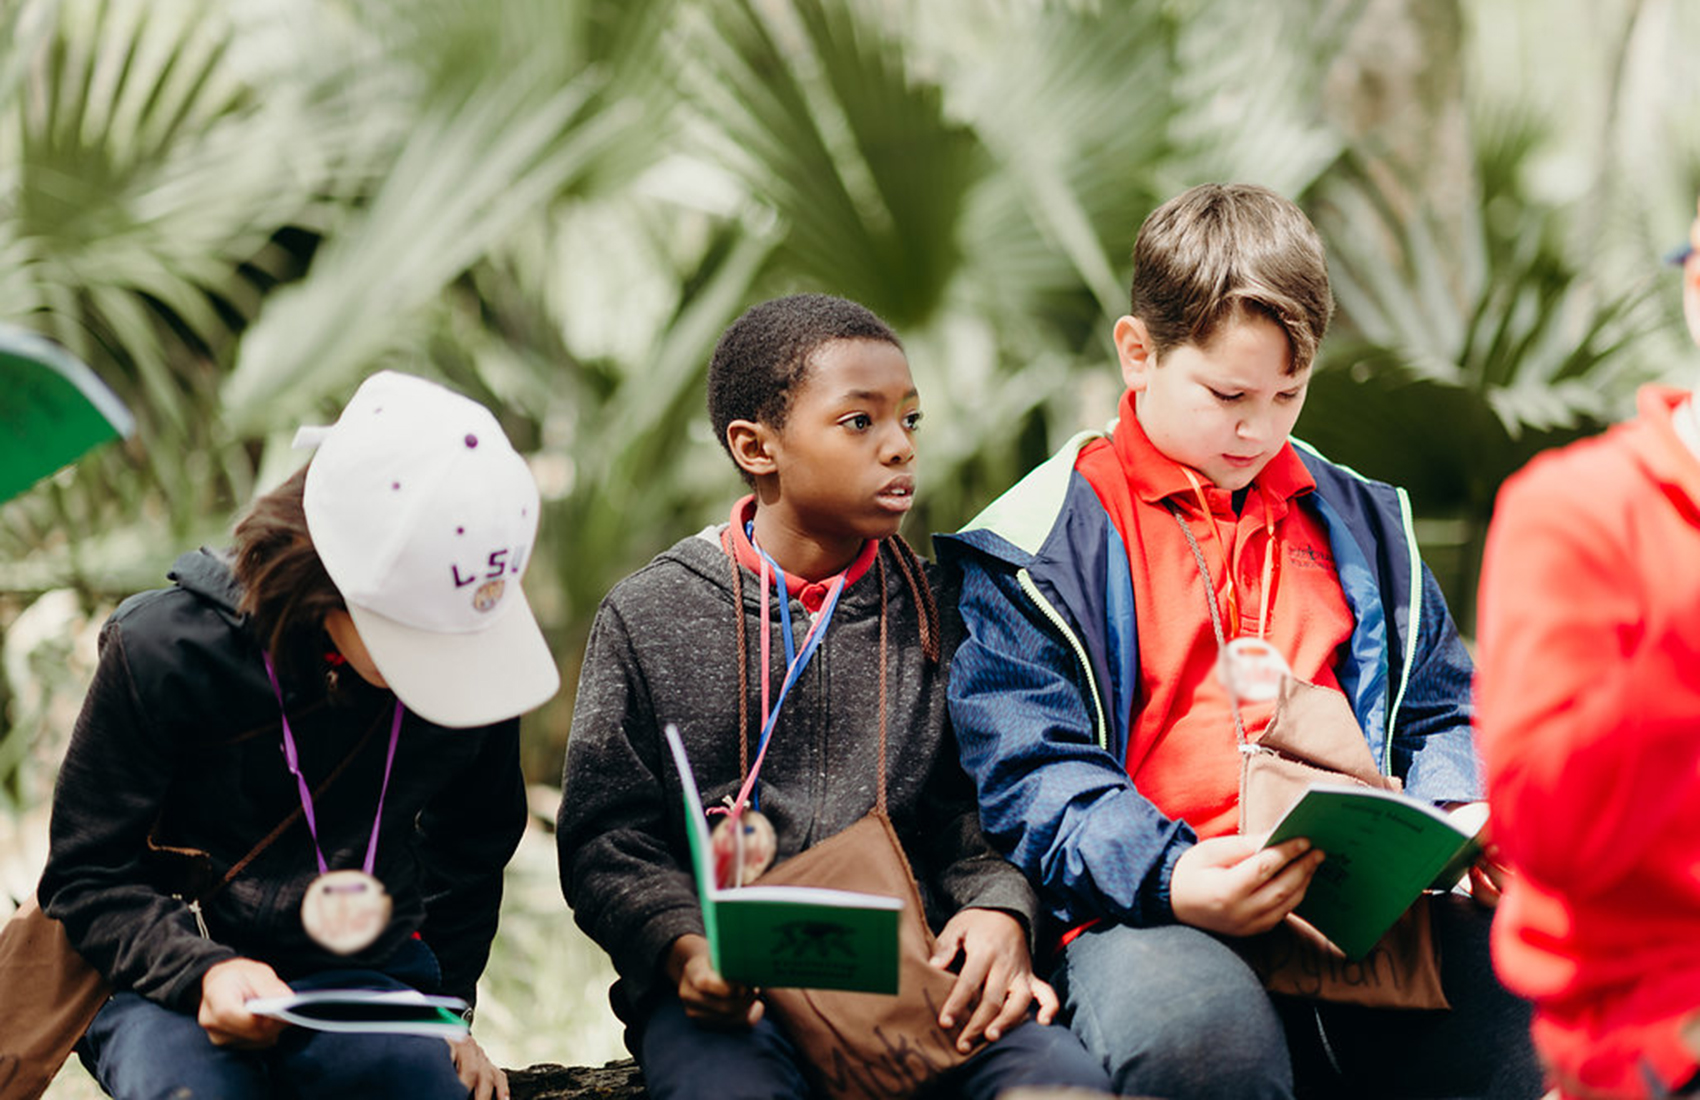 We areT.R.E.E. - Teaching Responsible Earth Education. And, our students are the greatest natural resource on Earth.